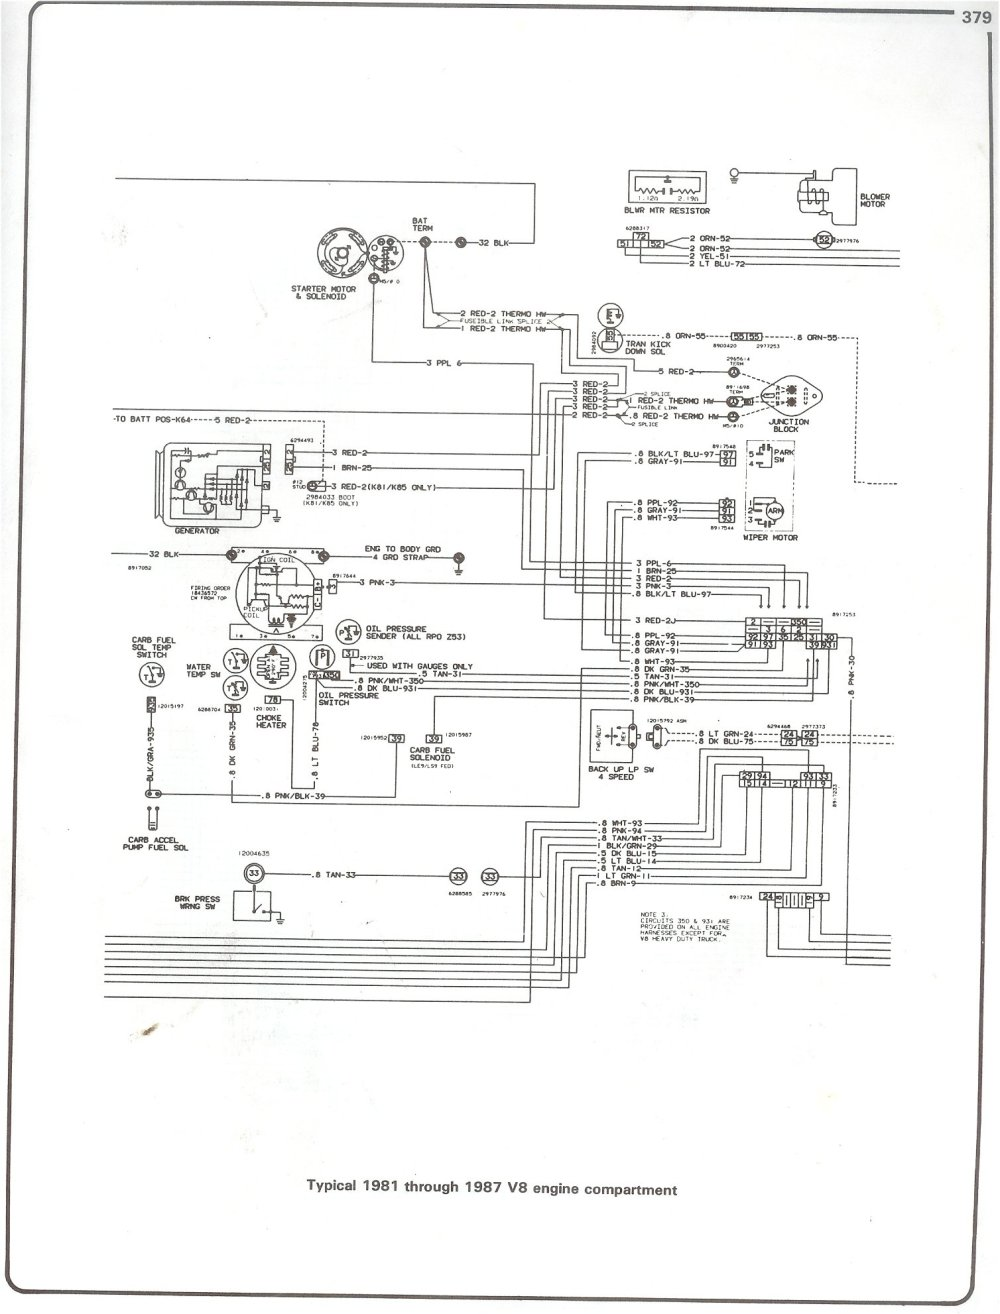 medium resolution of 1978 mgb wiring diagram for ignition free picture